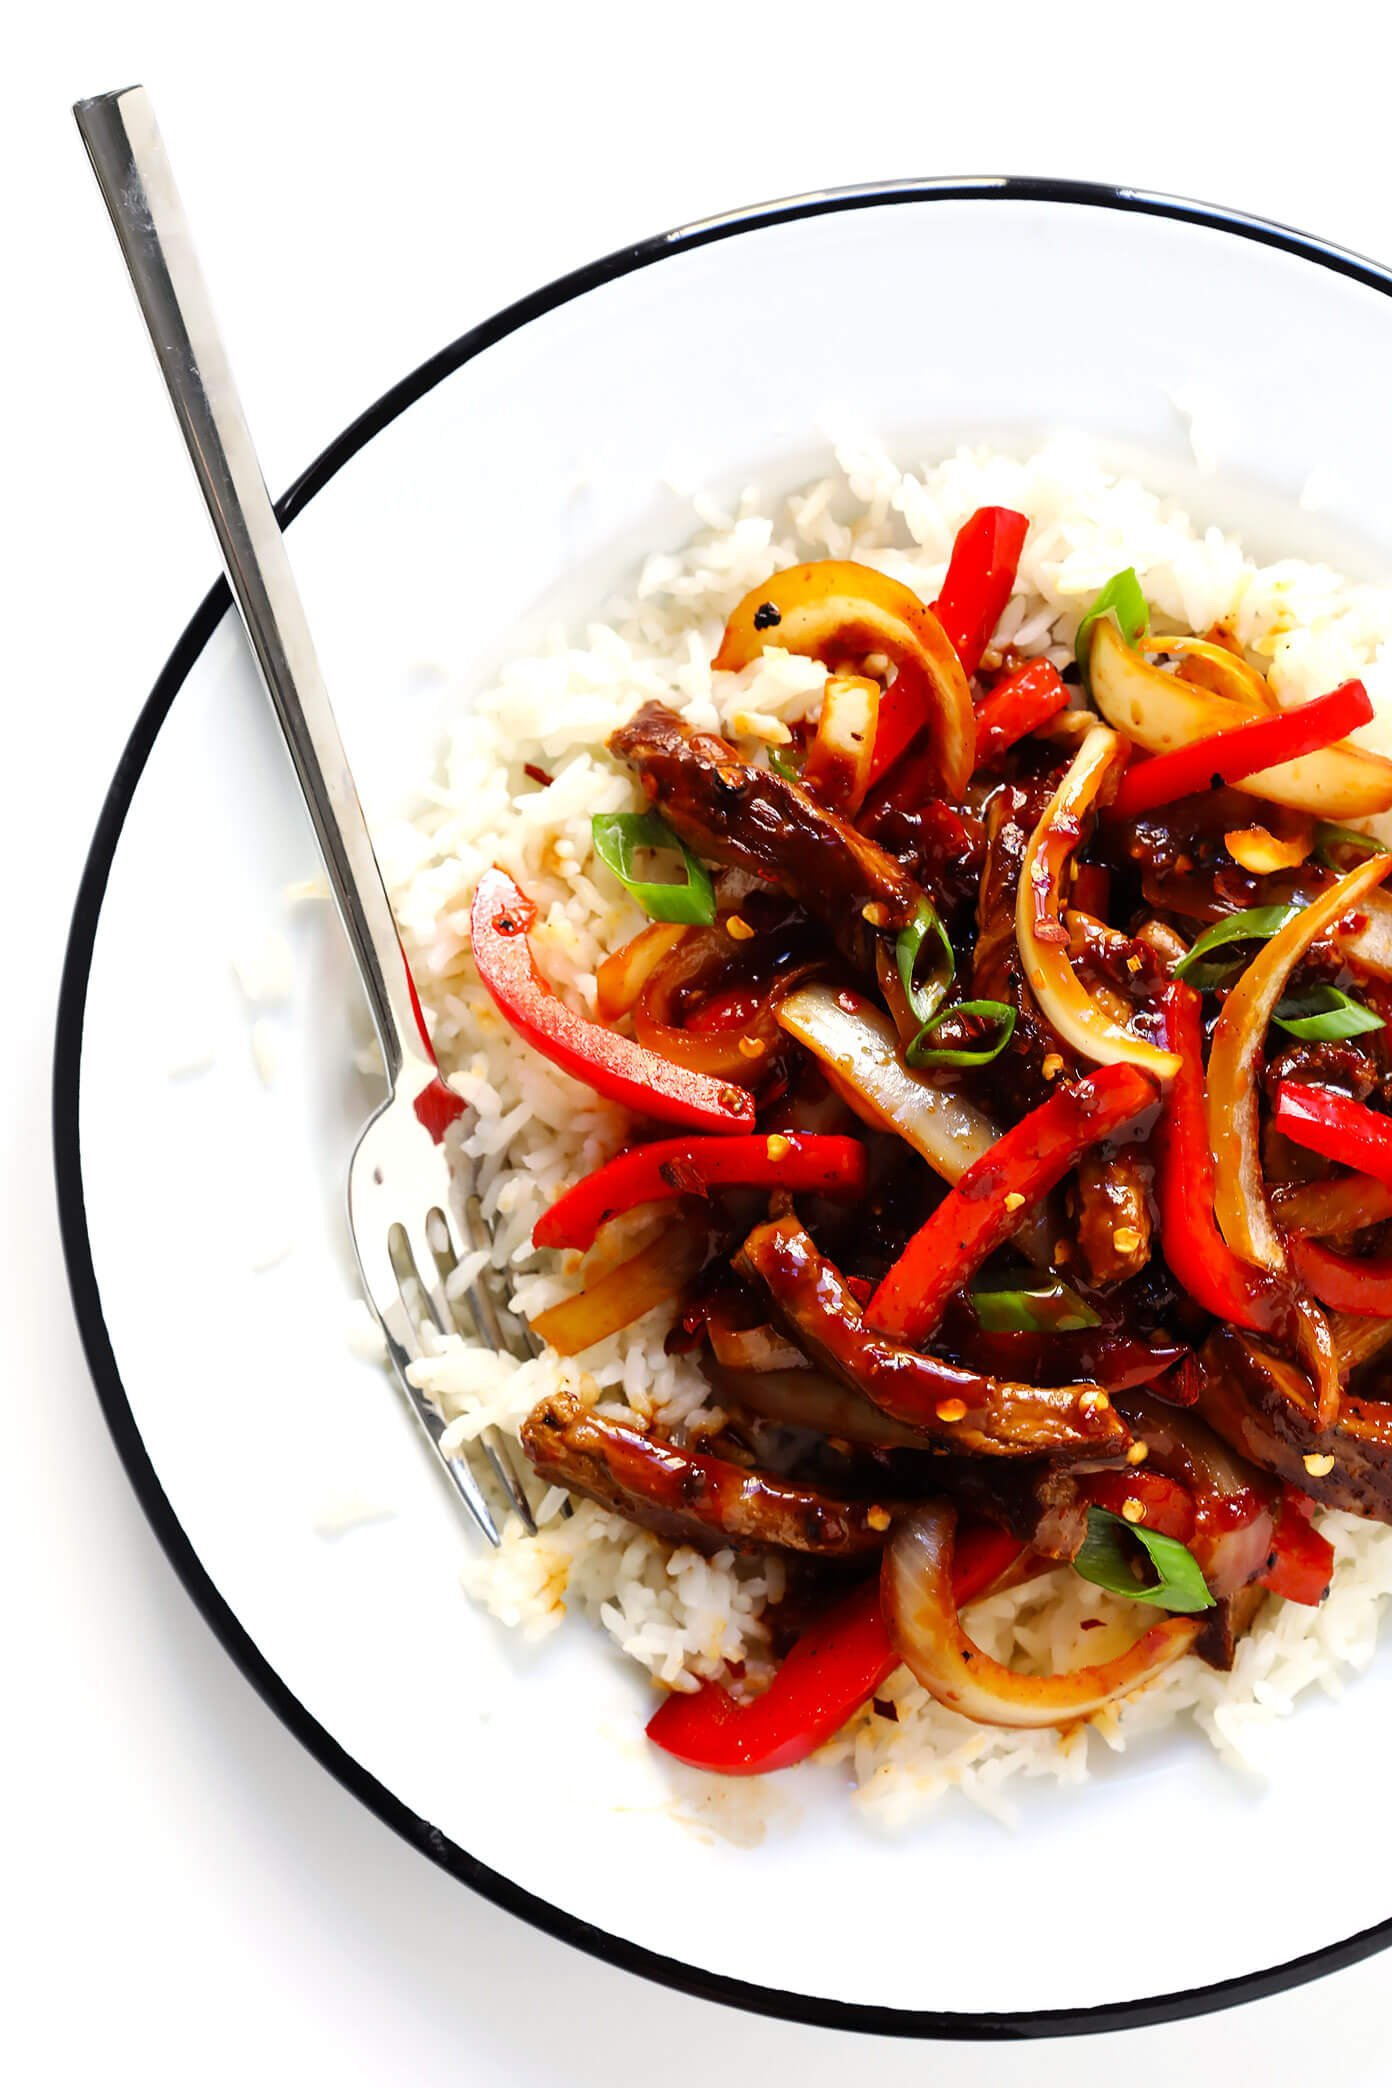 Sizzlin' Spicy Szechuan Stir-Fry with Steak